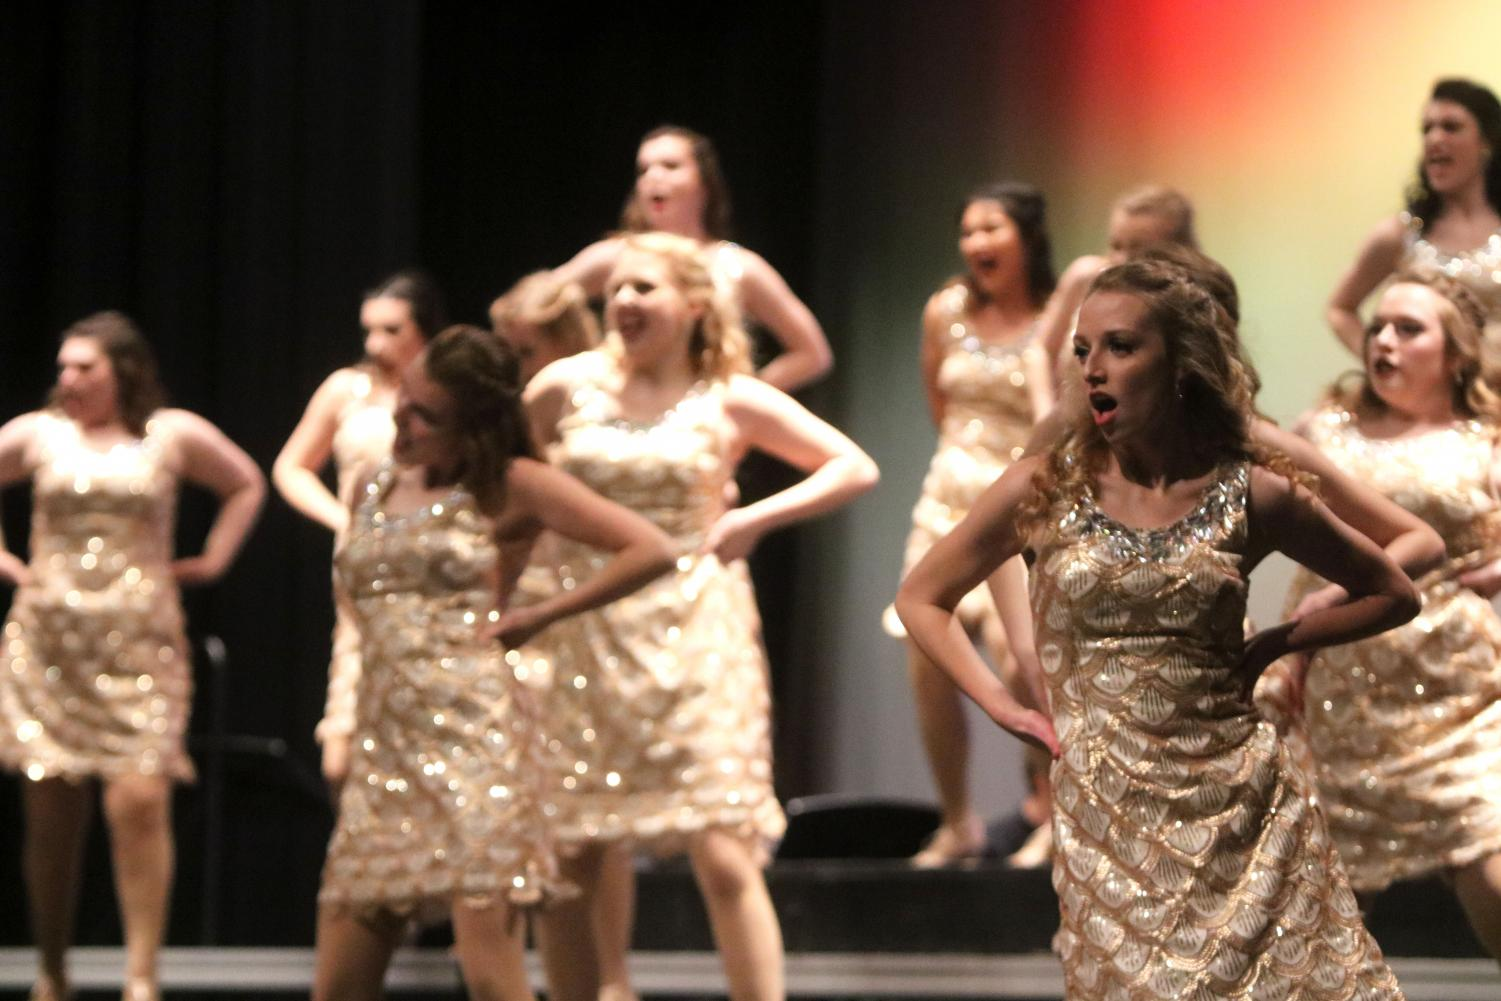 Senior+Katelyn+Gonzales+gets+sassy+during+the+song+Vogue.+